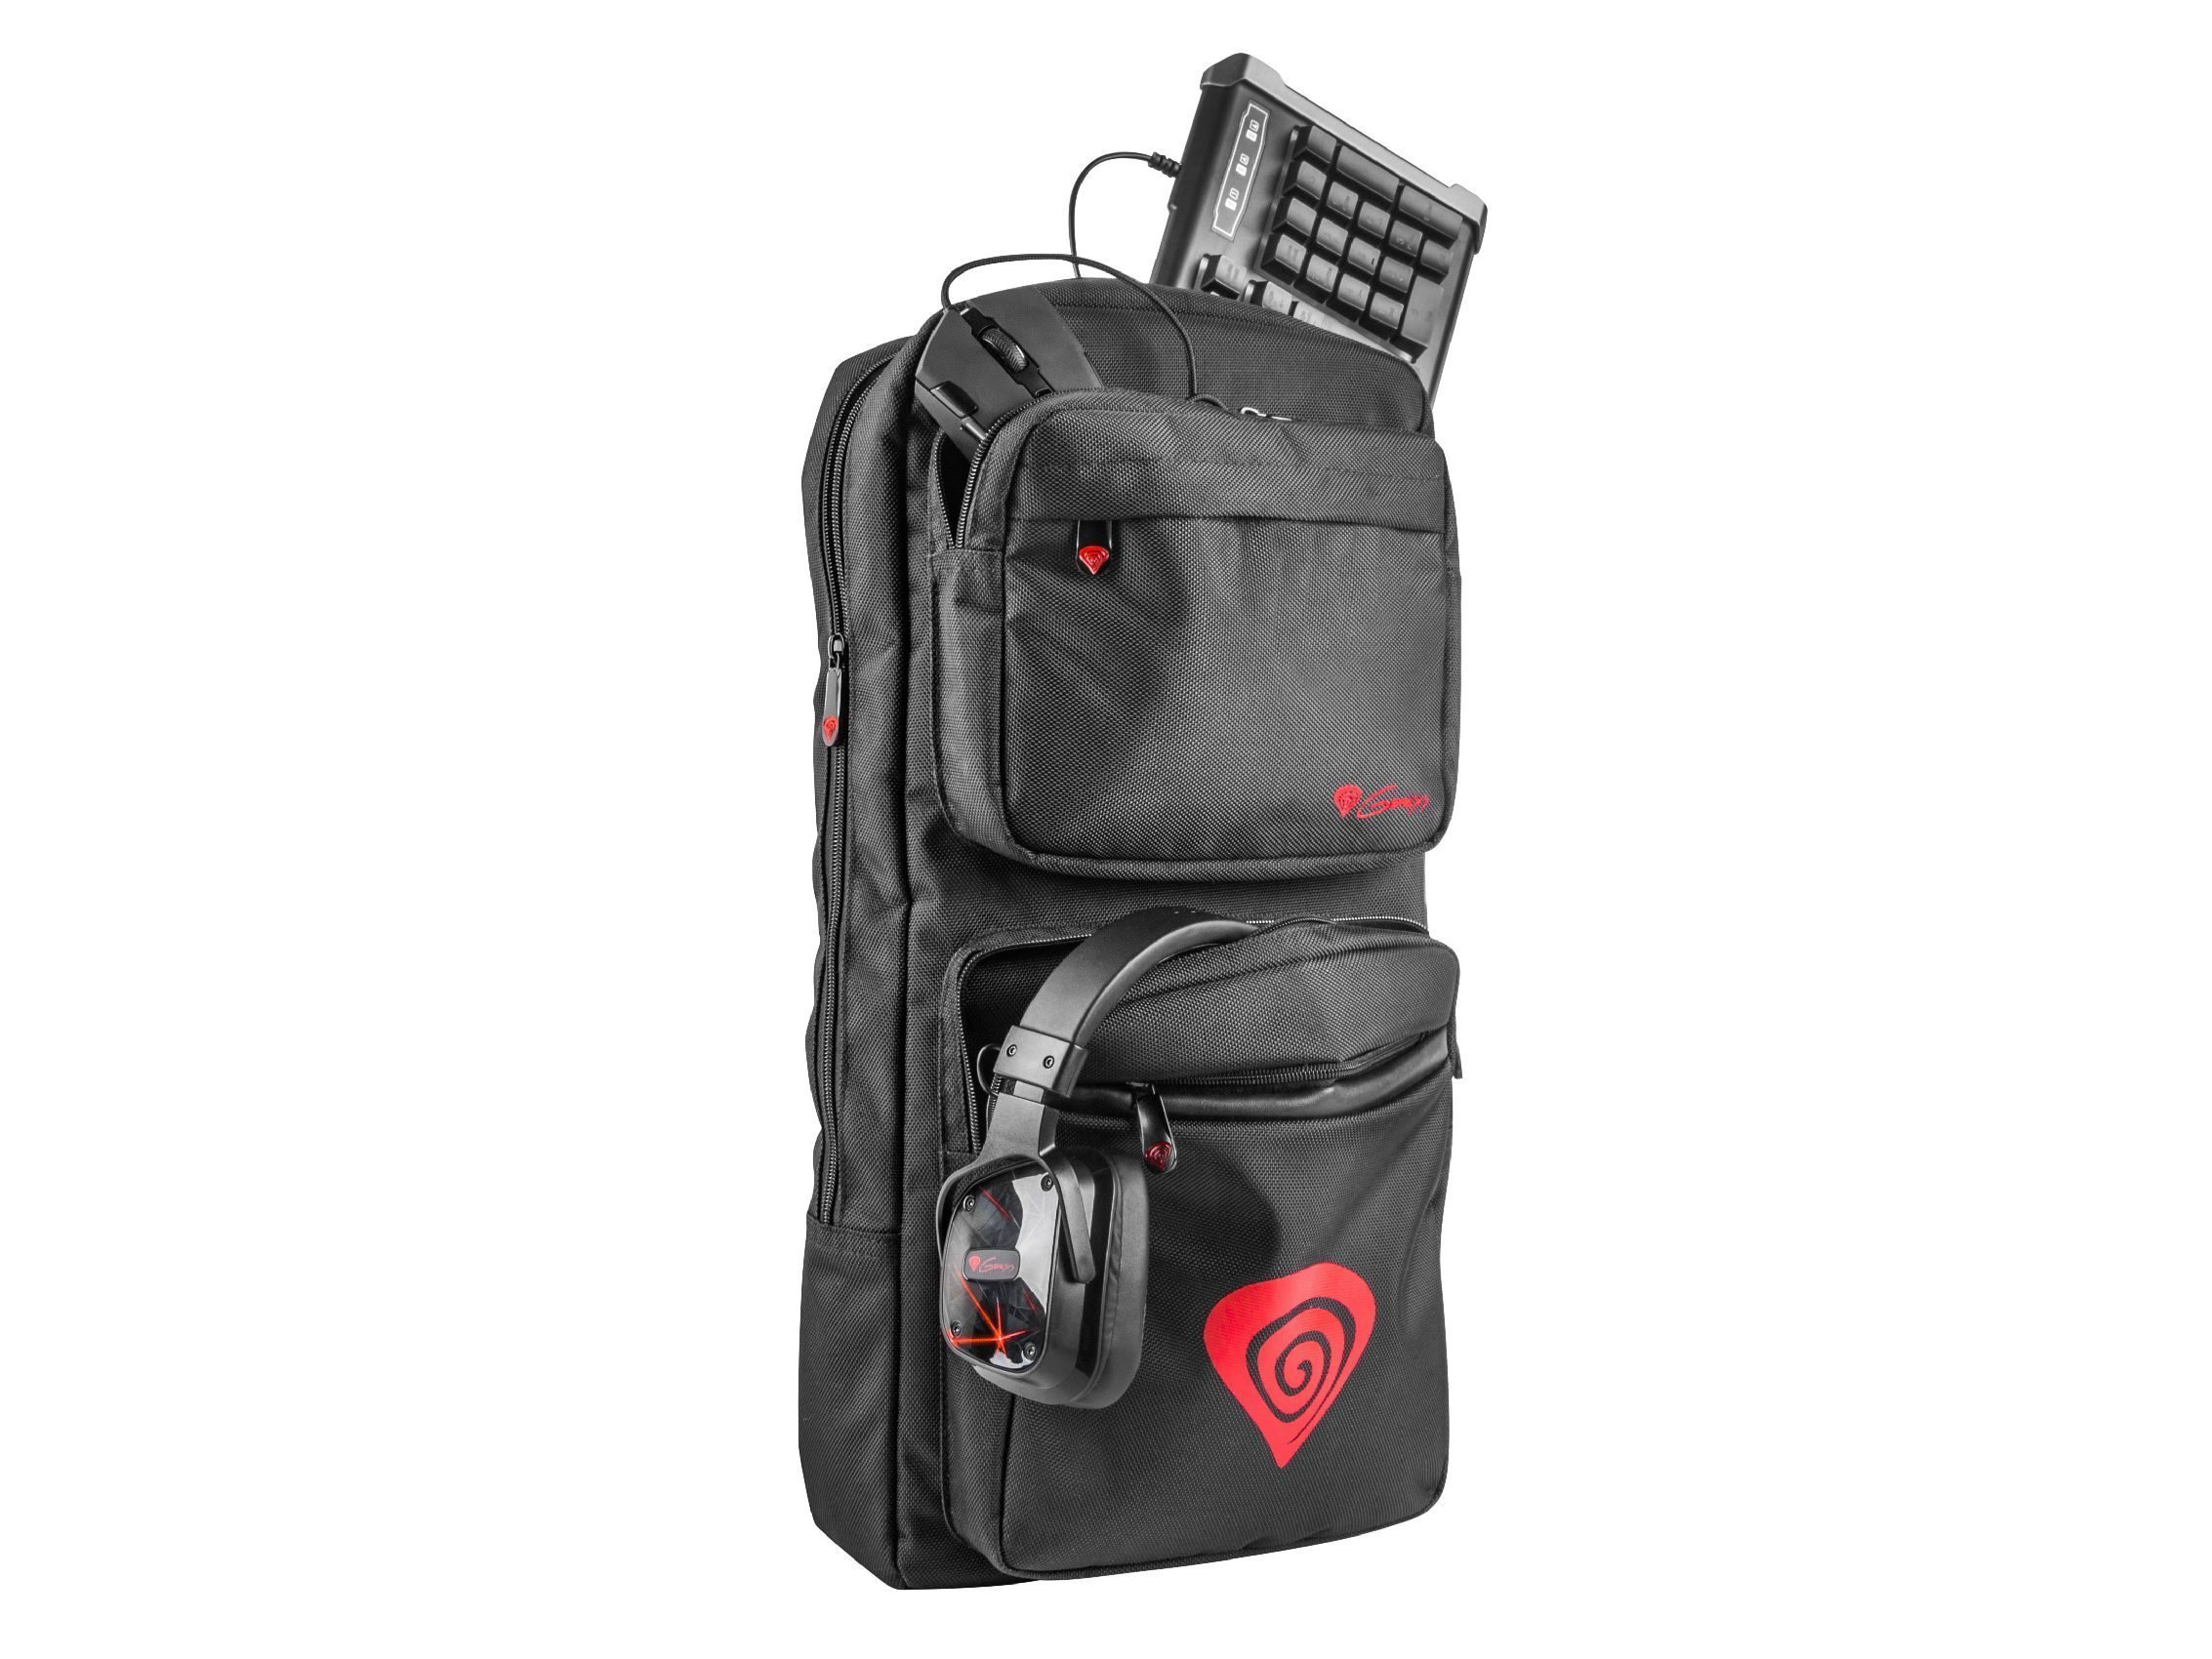 Genesis Backpack Gaming - PALLAD 300 - NBG-1070